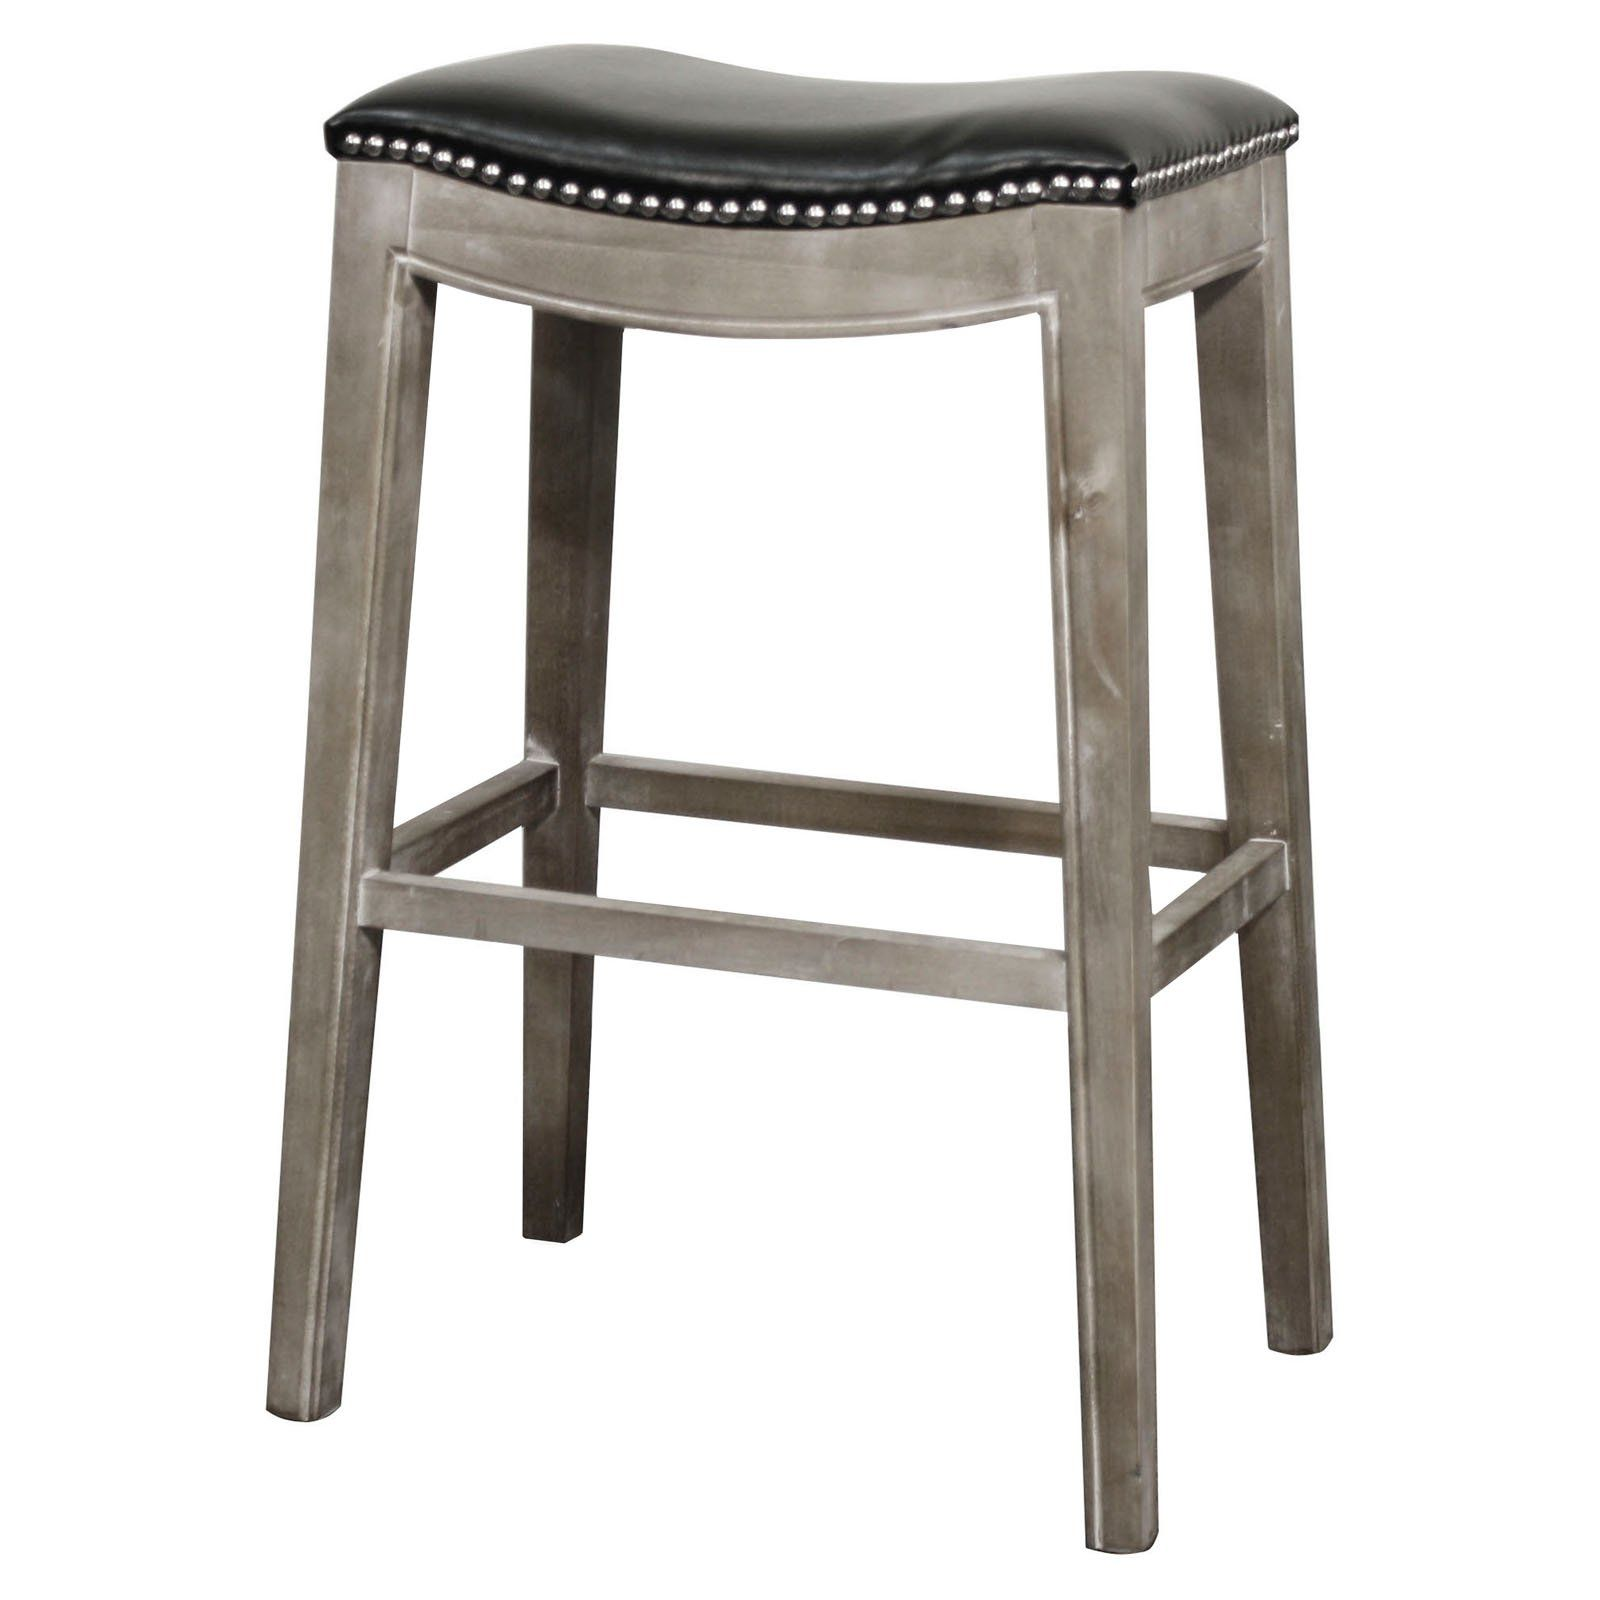 5009b4872070 New Pacific Direct Inc Elmo 31 in. Bonded Leather Bar Stool in 2019 ...